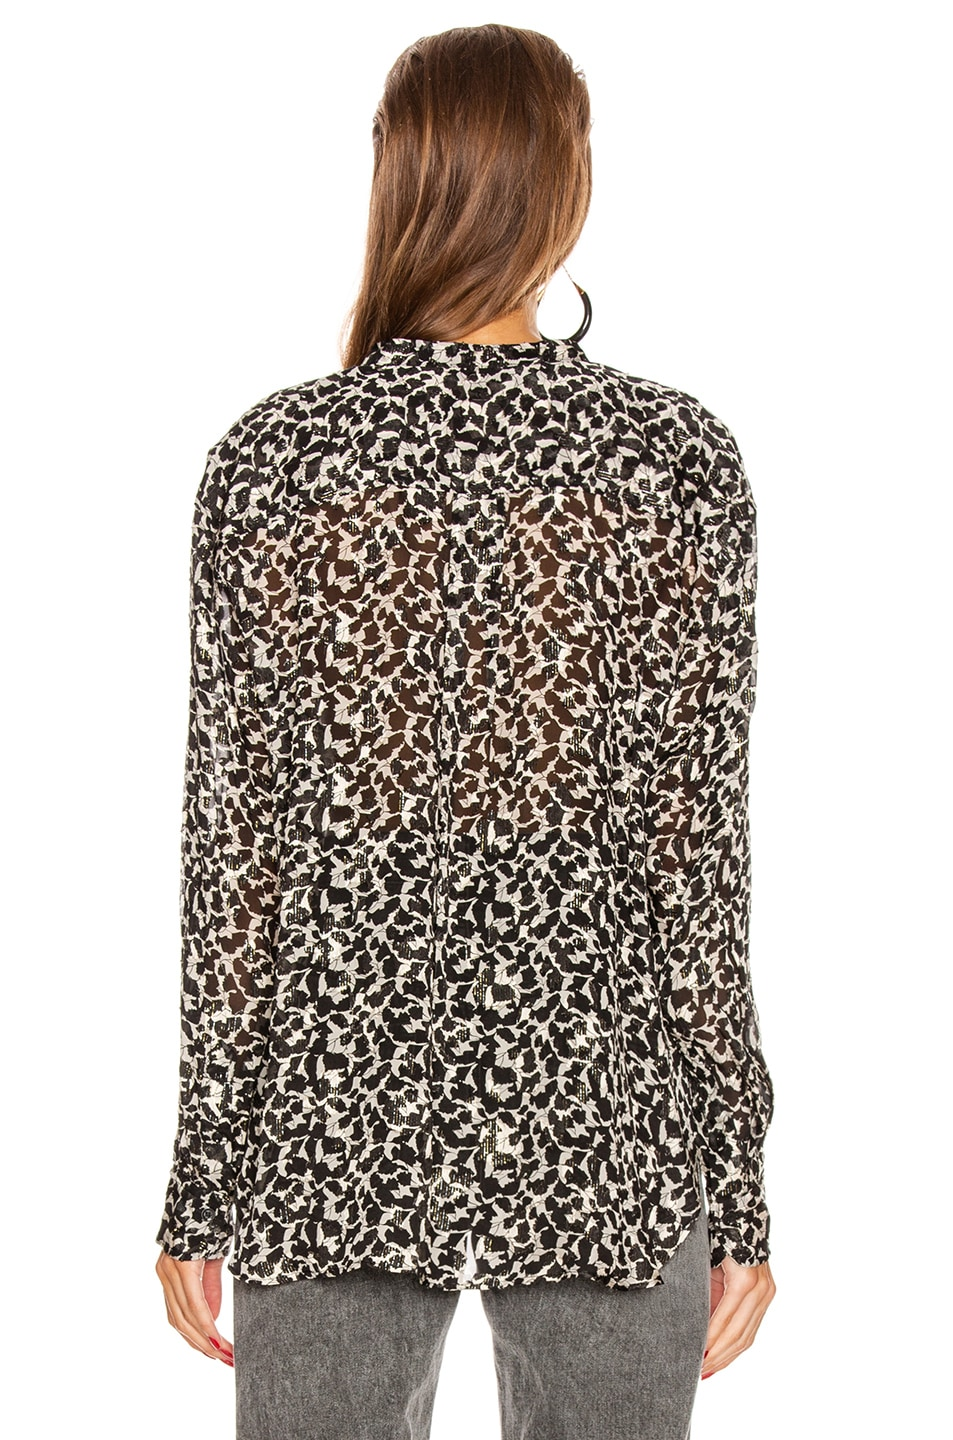 Image 3 of Isabel Marant Daws Top in Ecru in Black & Ecru